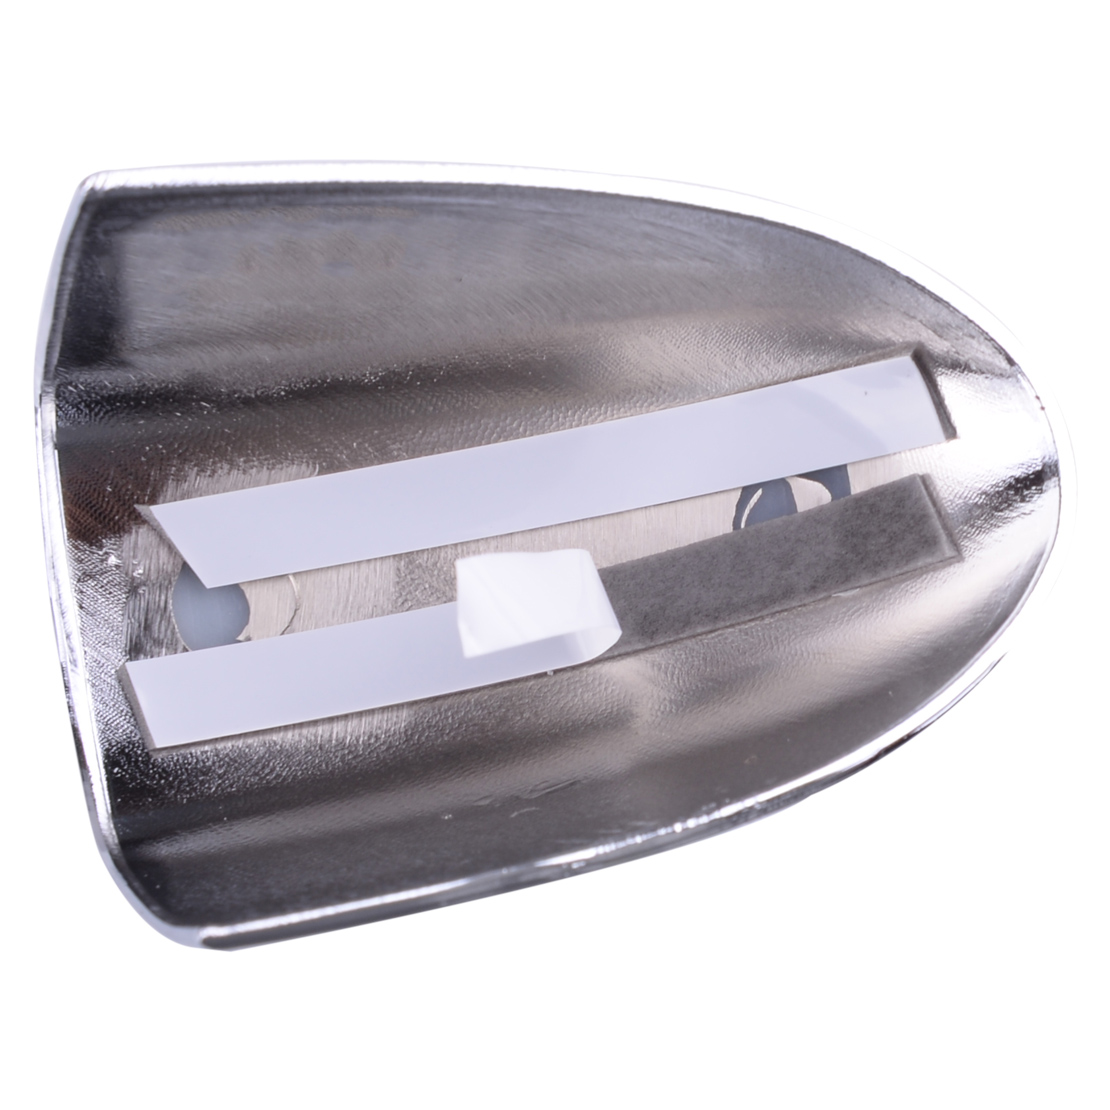 8x With Smart Key Hole Door Handle Cover Trim Chrome ABS For Jeep Cherokee 14-17